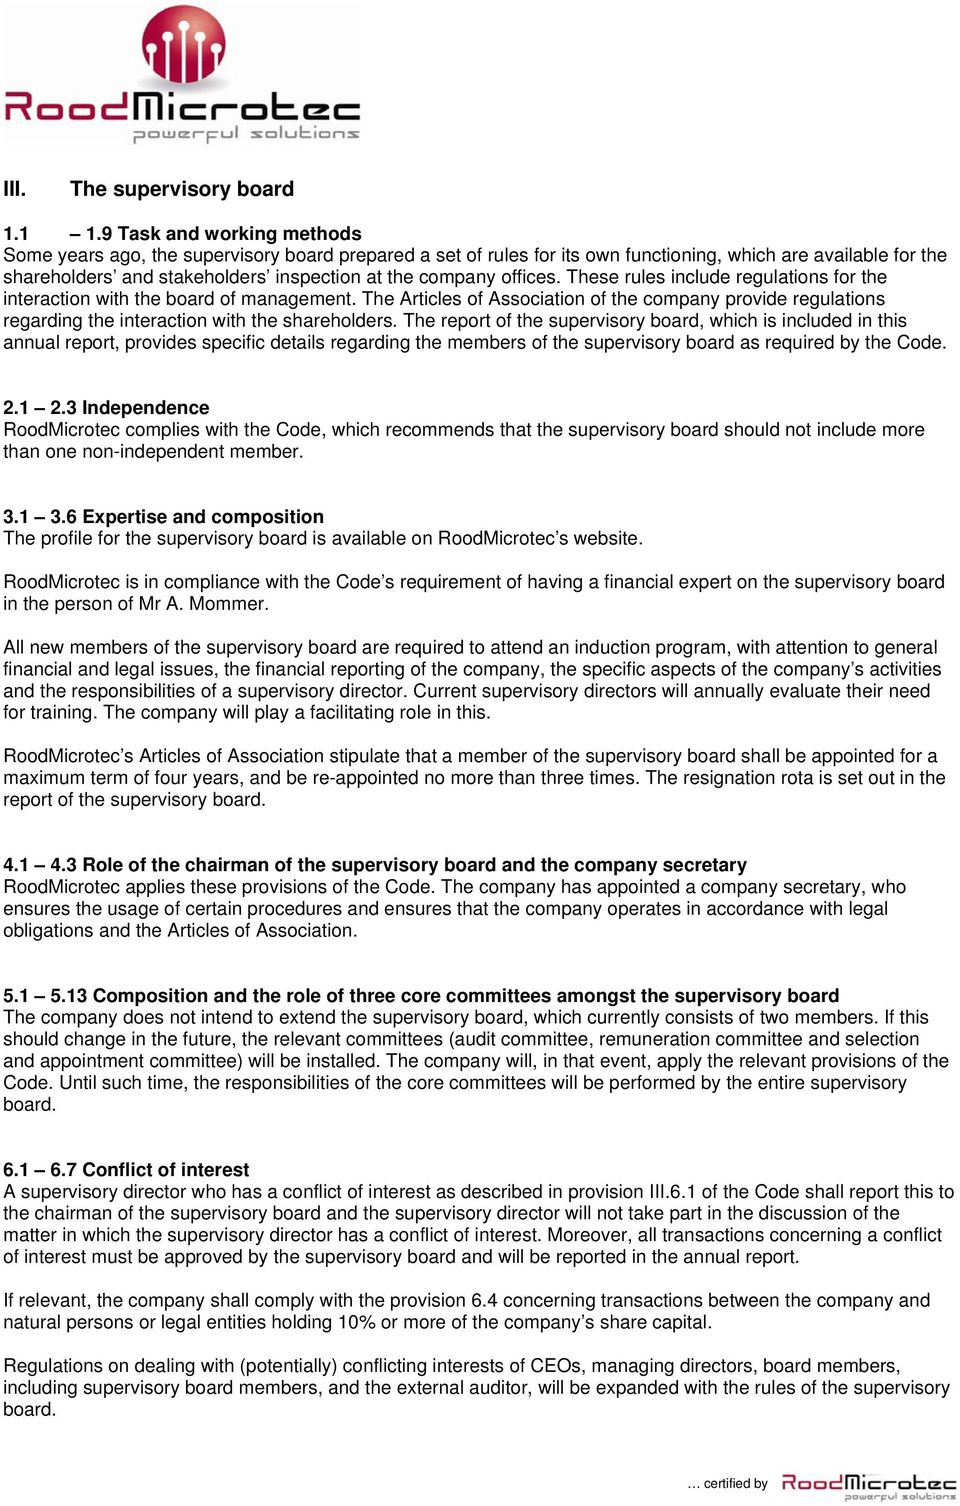 offices. These rules include regulations for the interaction with the board of management.